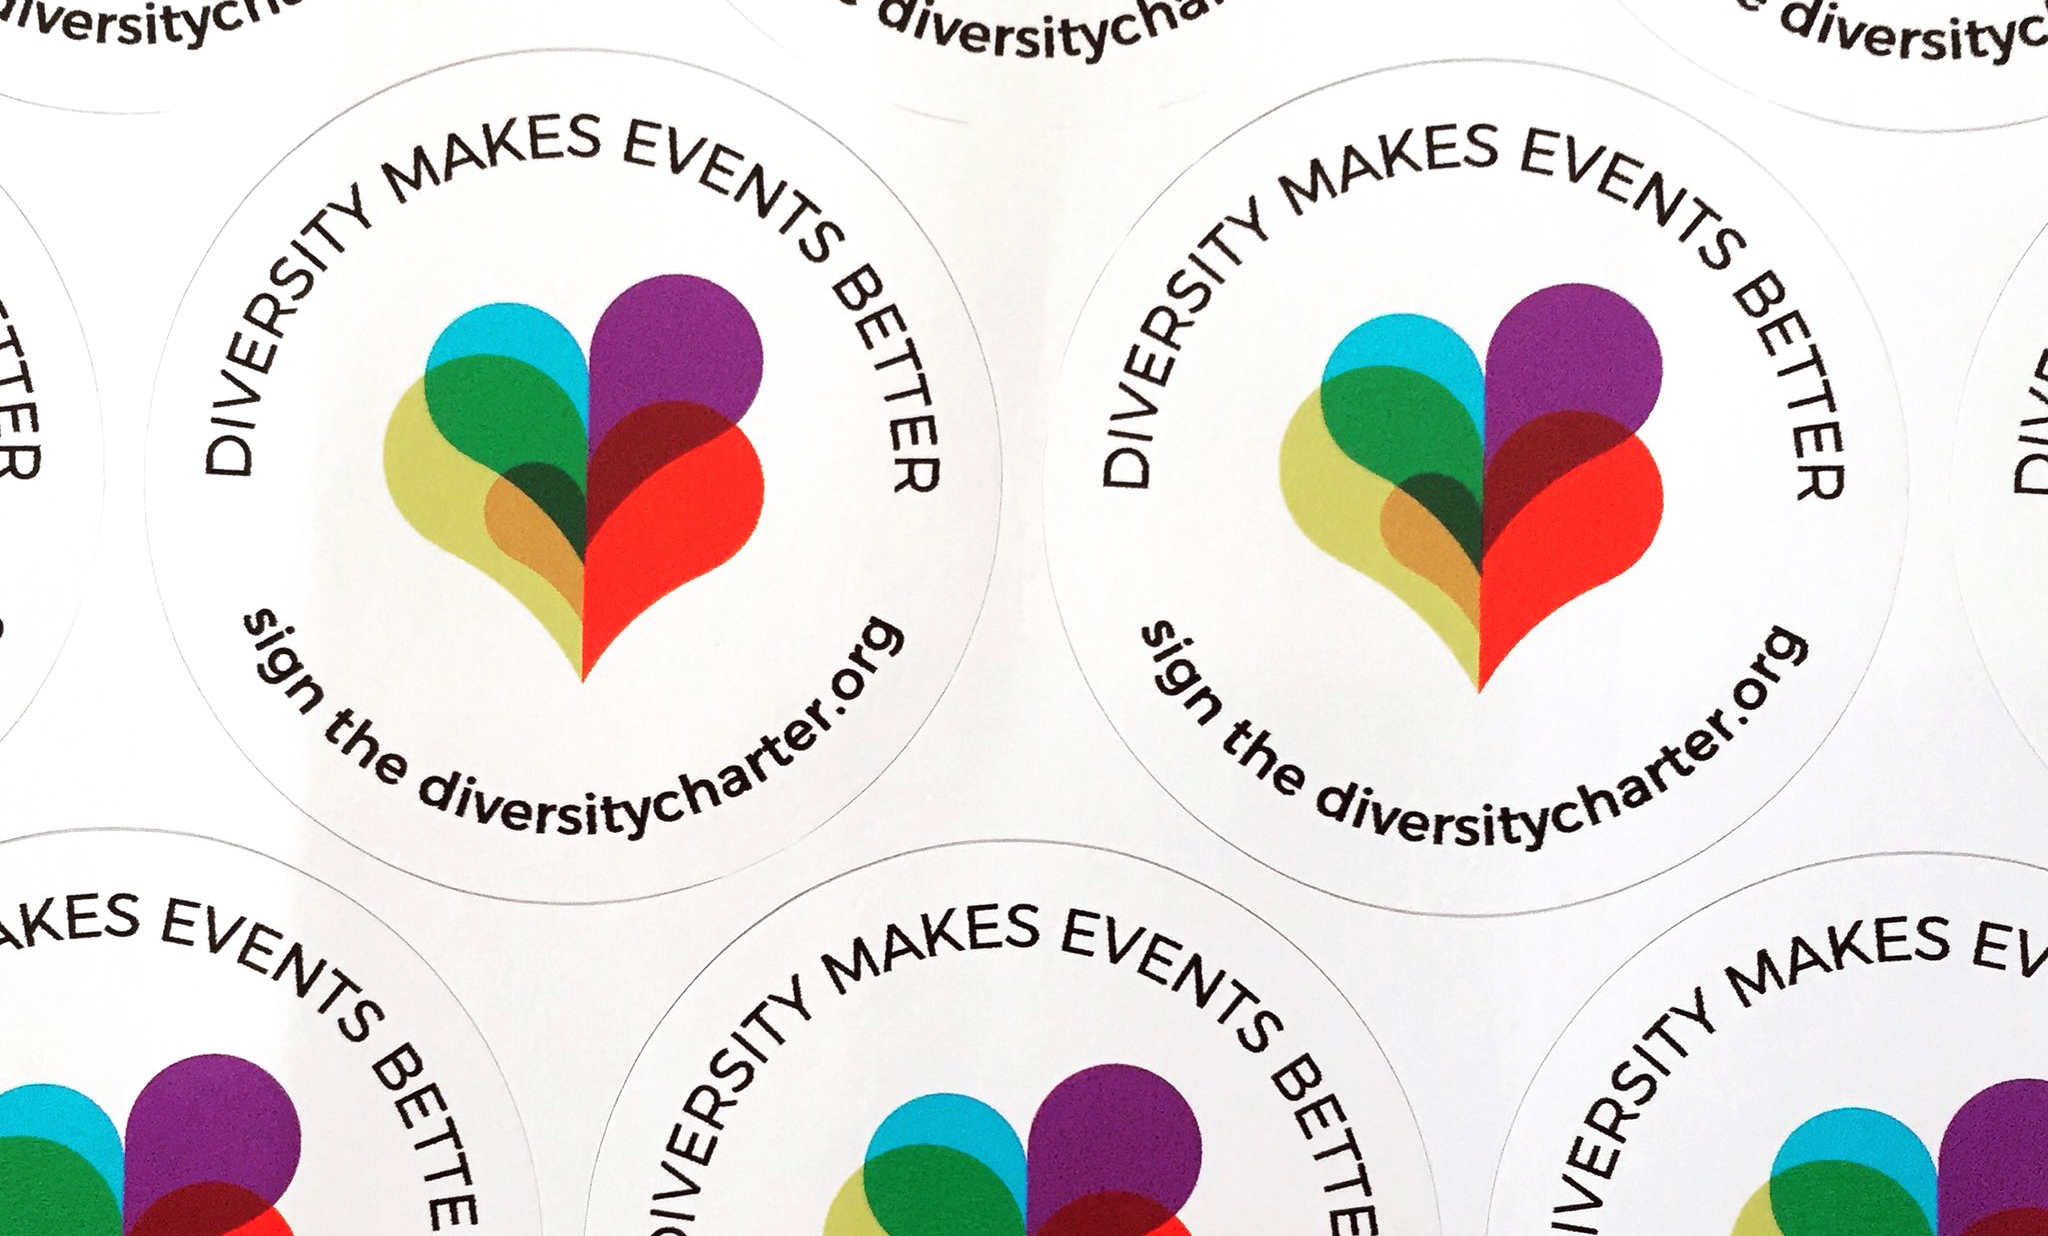 Diversity charter stickers